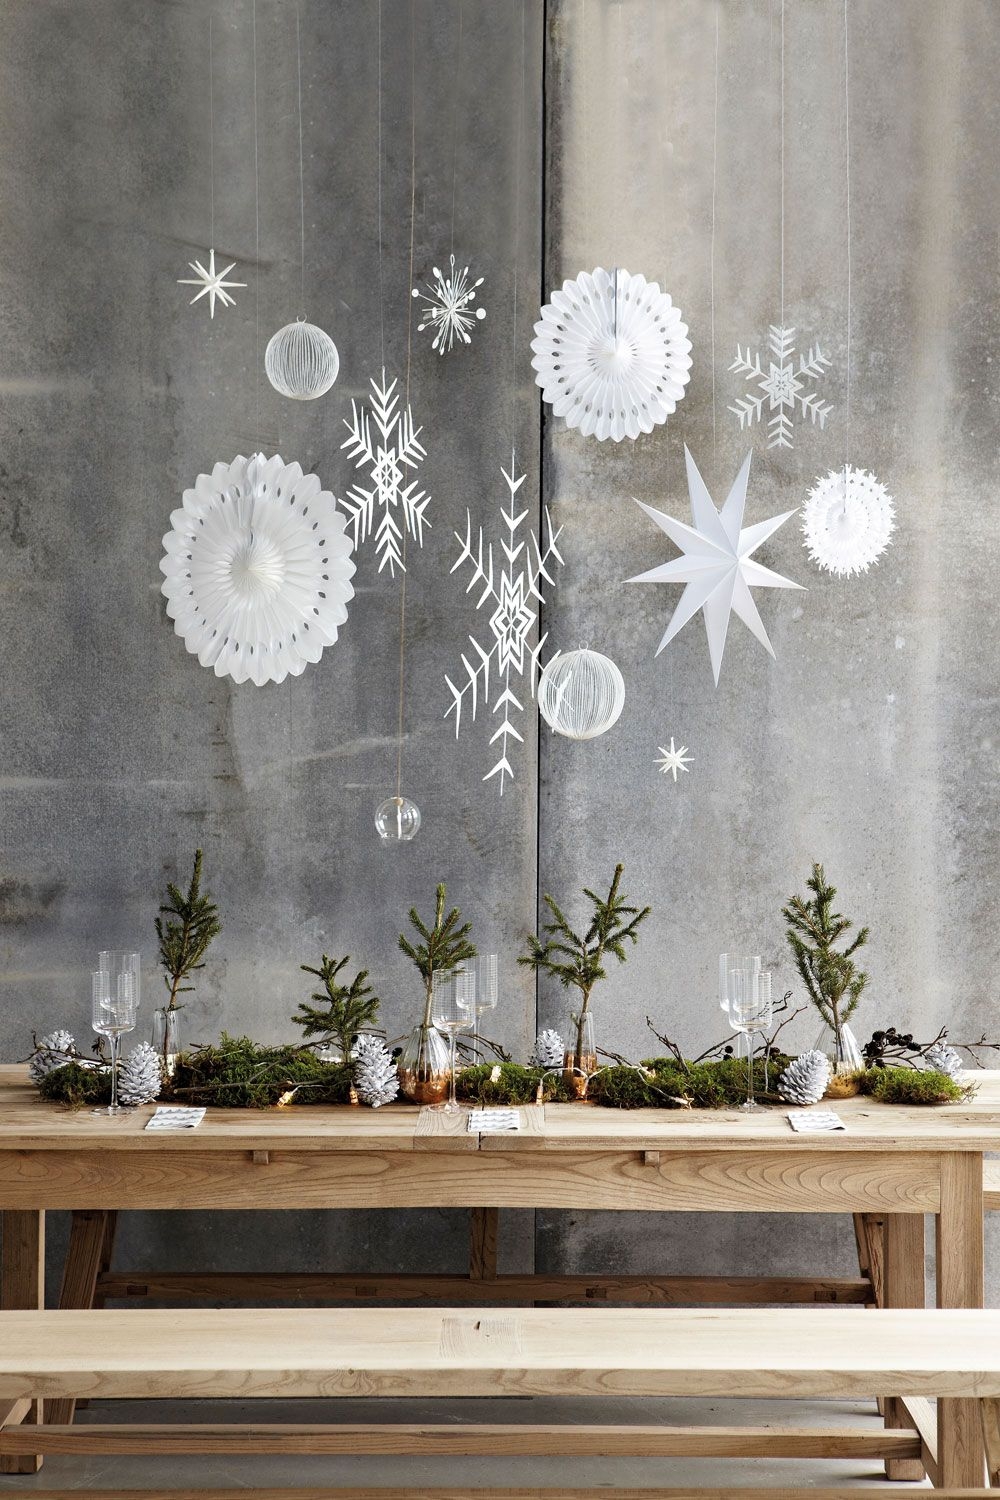 Window decor for christmas  expanded image   snowflakes u window decorations  pinterest  merry